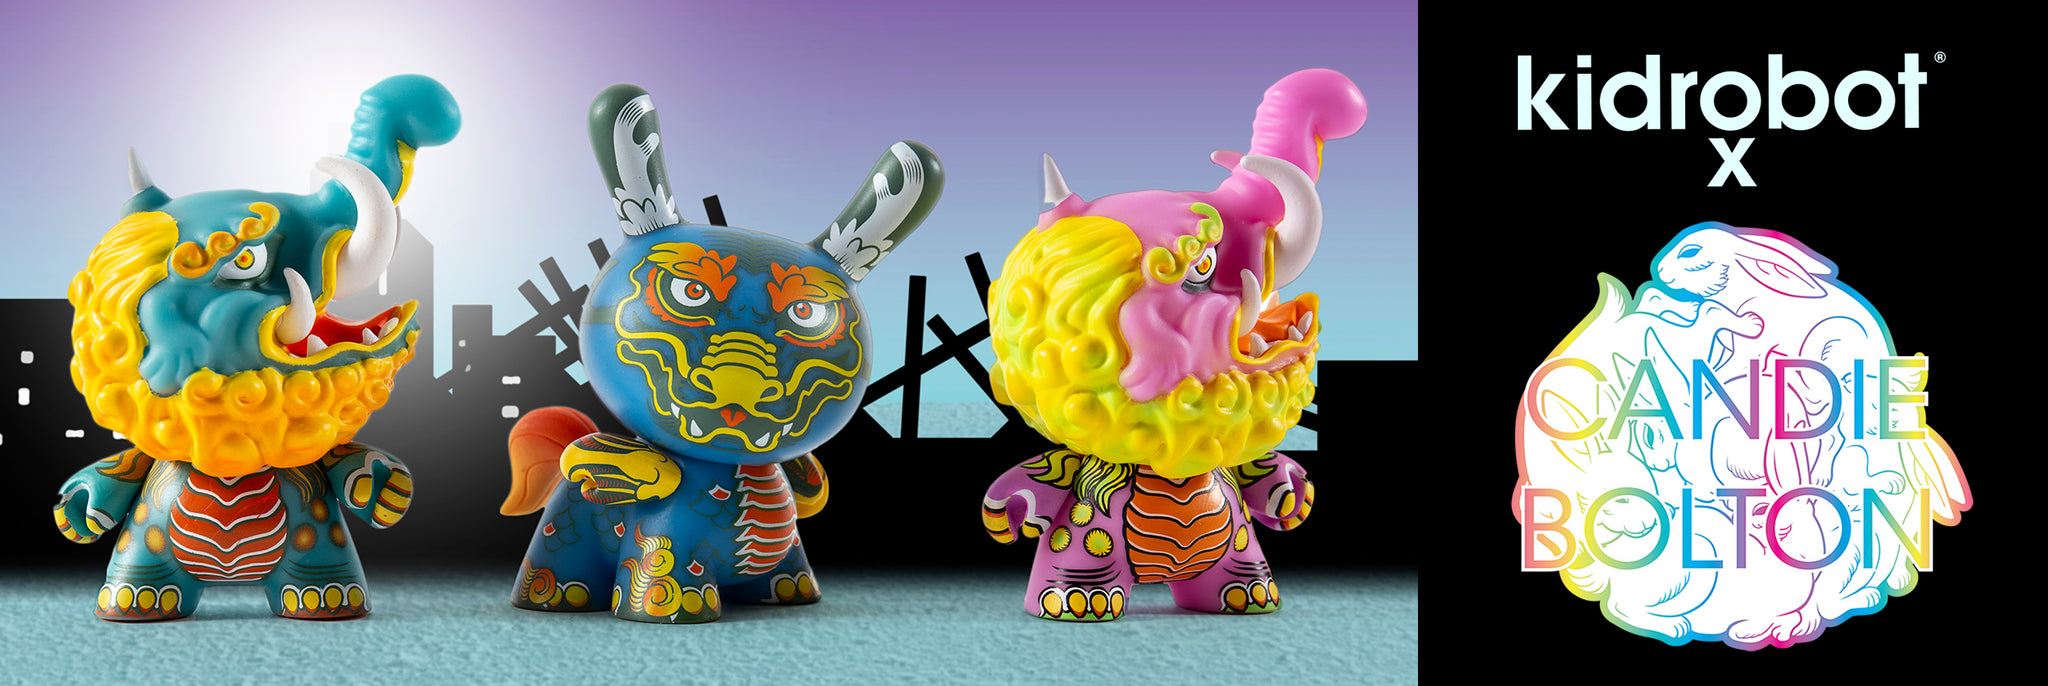 Kidrobot x Candie Bolton Art Toys & Dunny Art Figures